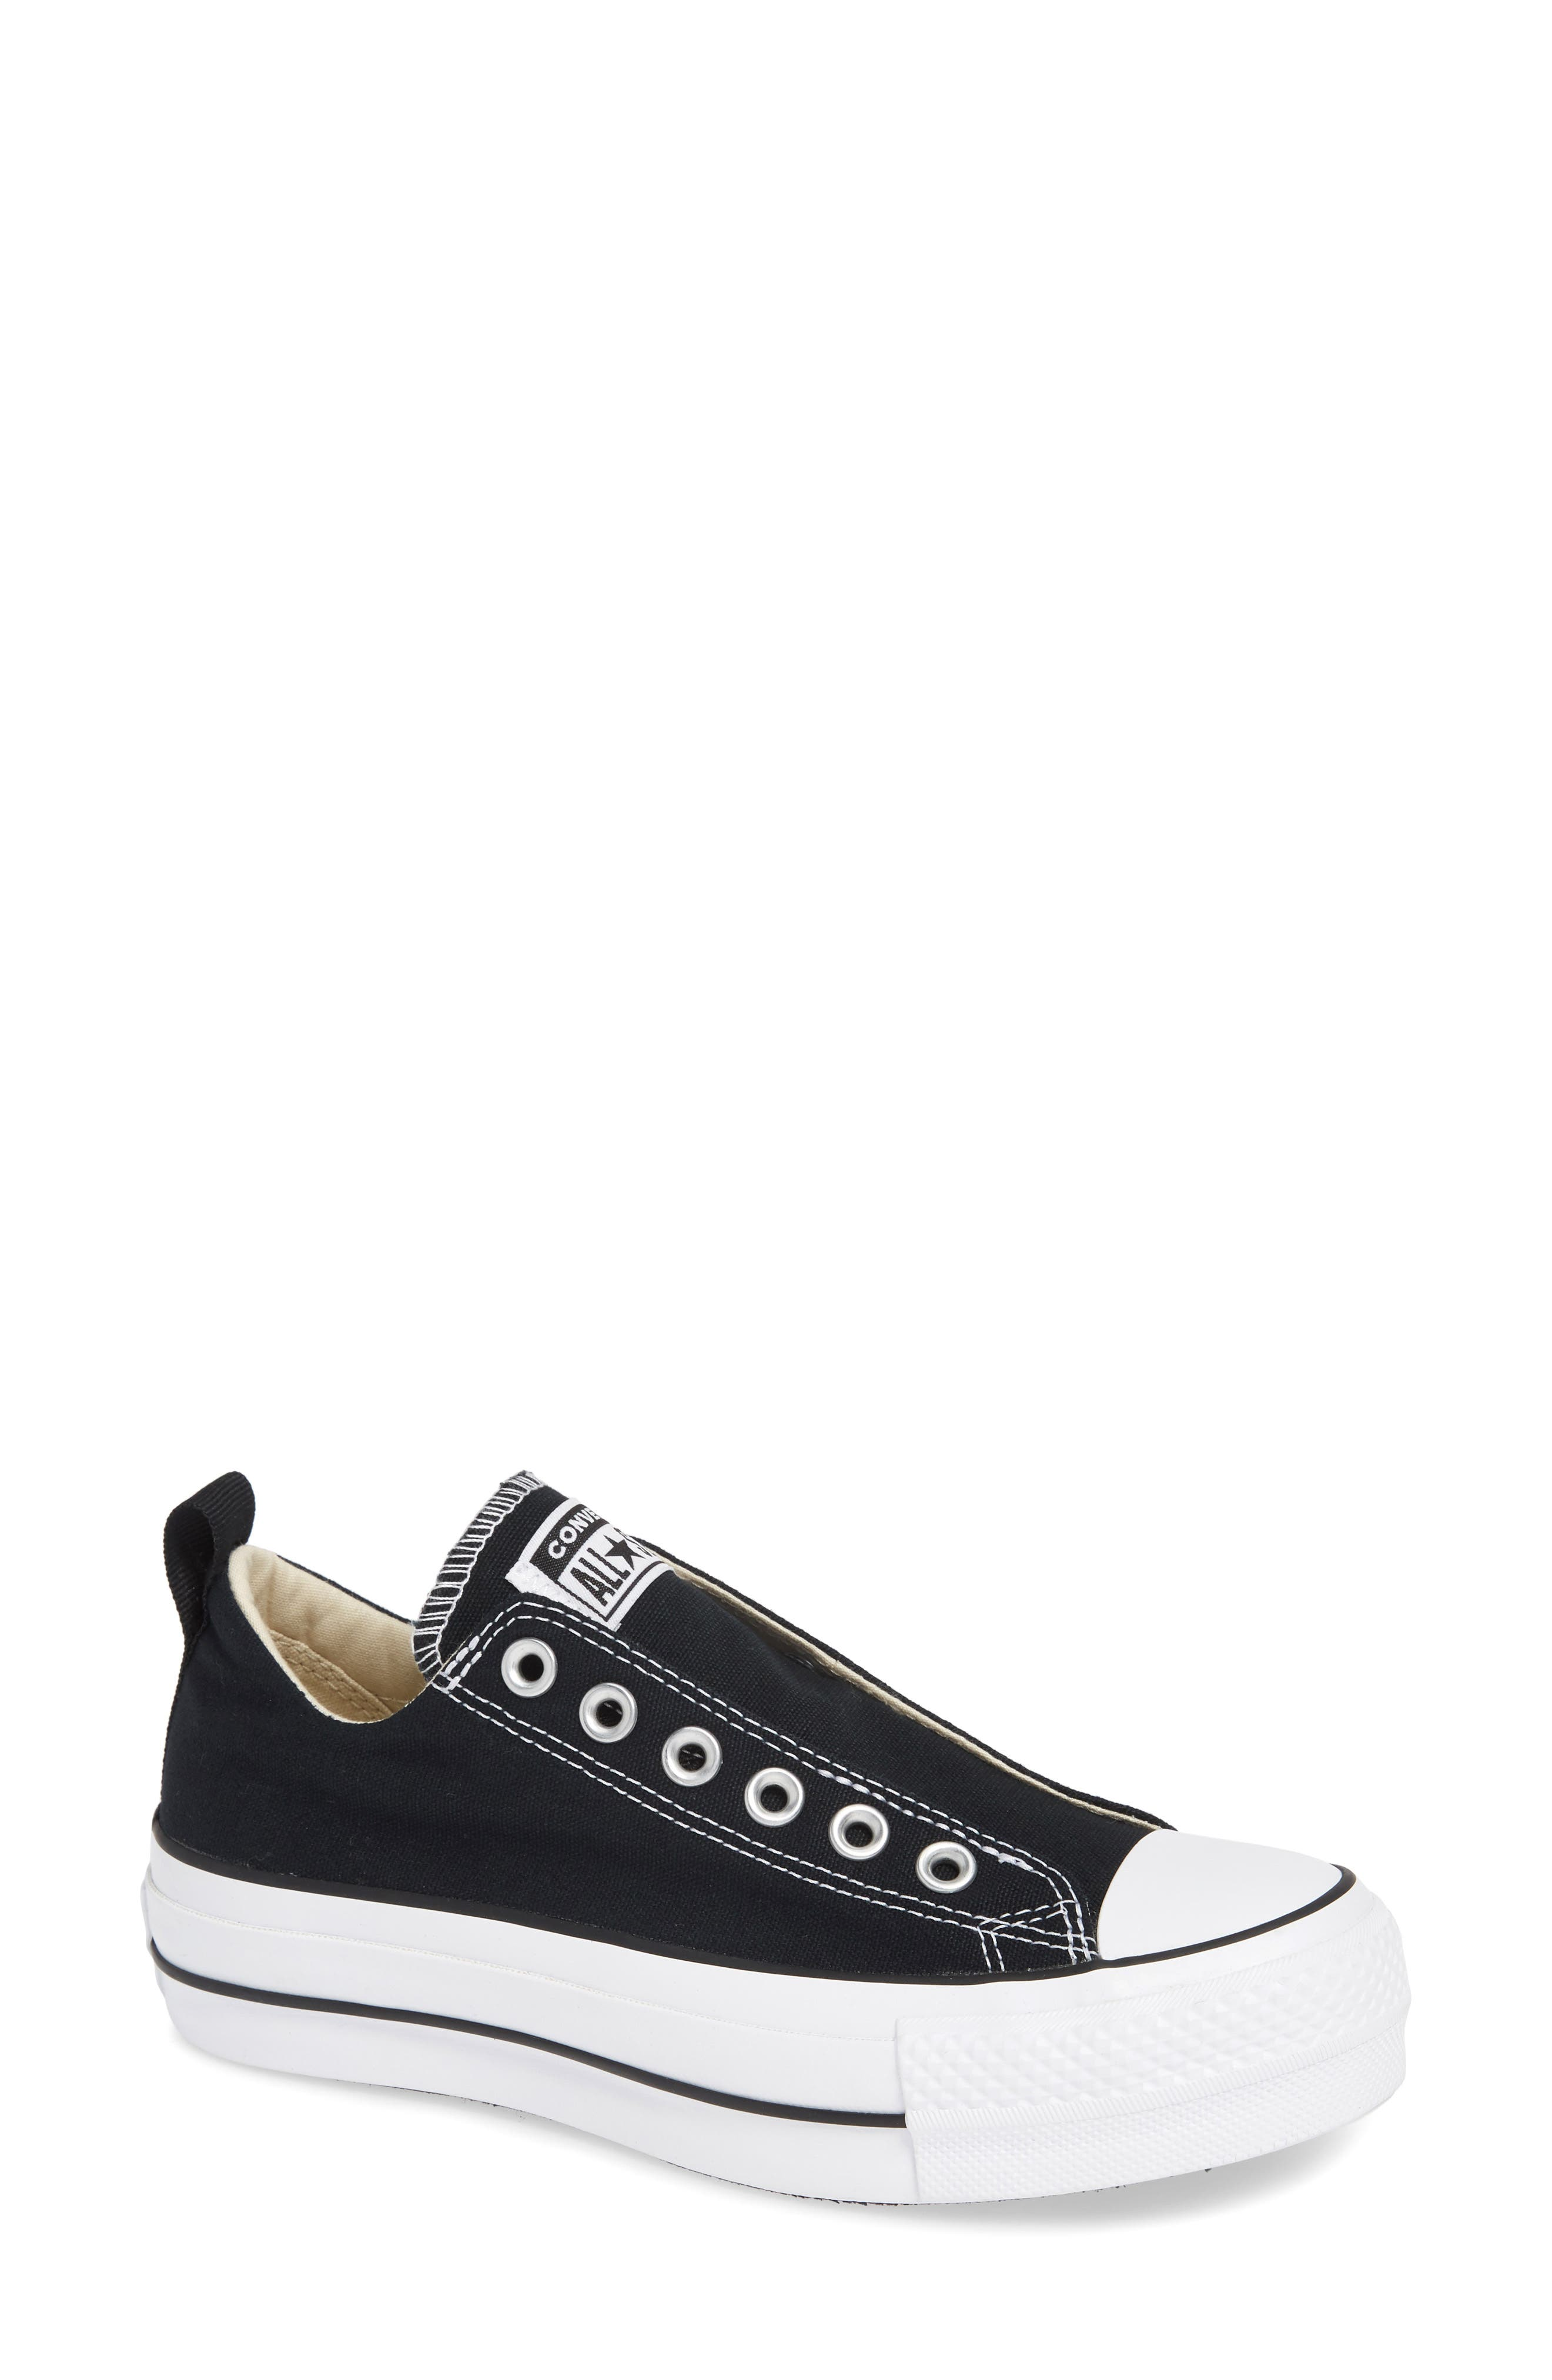 CONVERSE Chuck Taylor<sup>®</sup> All Star<sup>®</sup> Low Top Sneaker, Main, color, BLACK/ WHITE/ BLACK